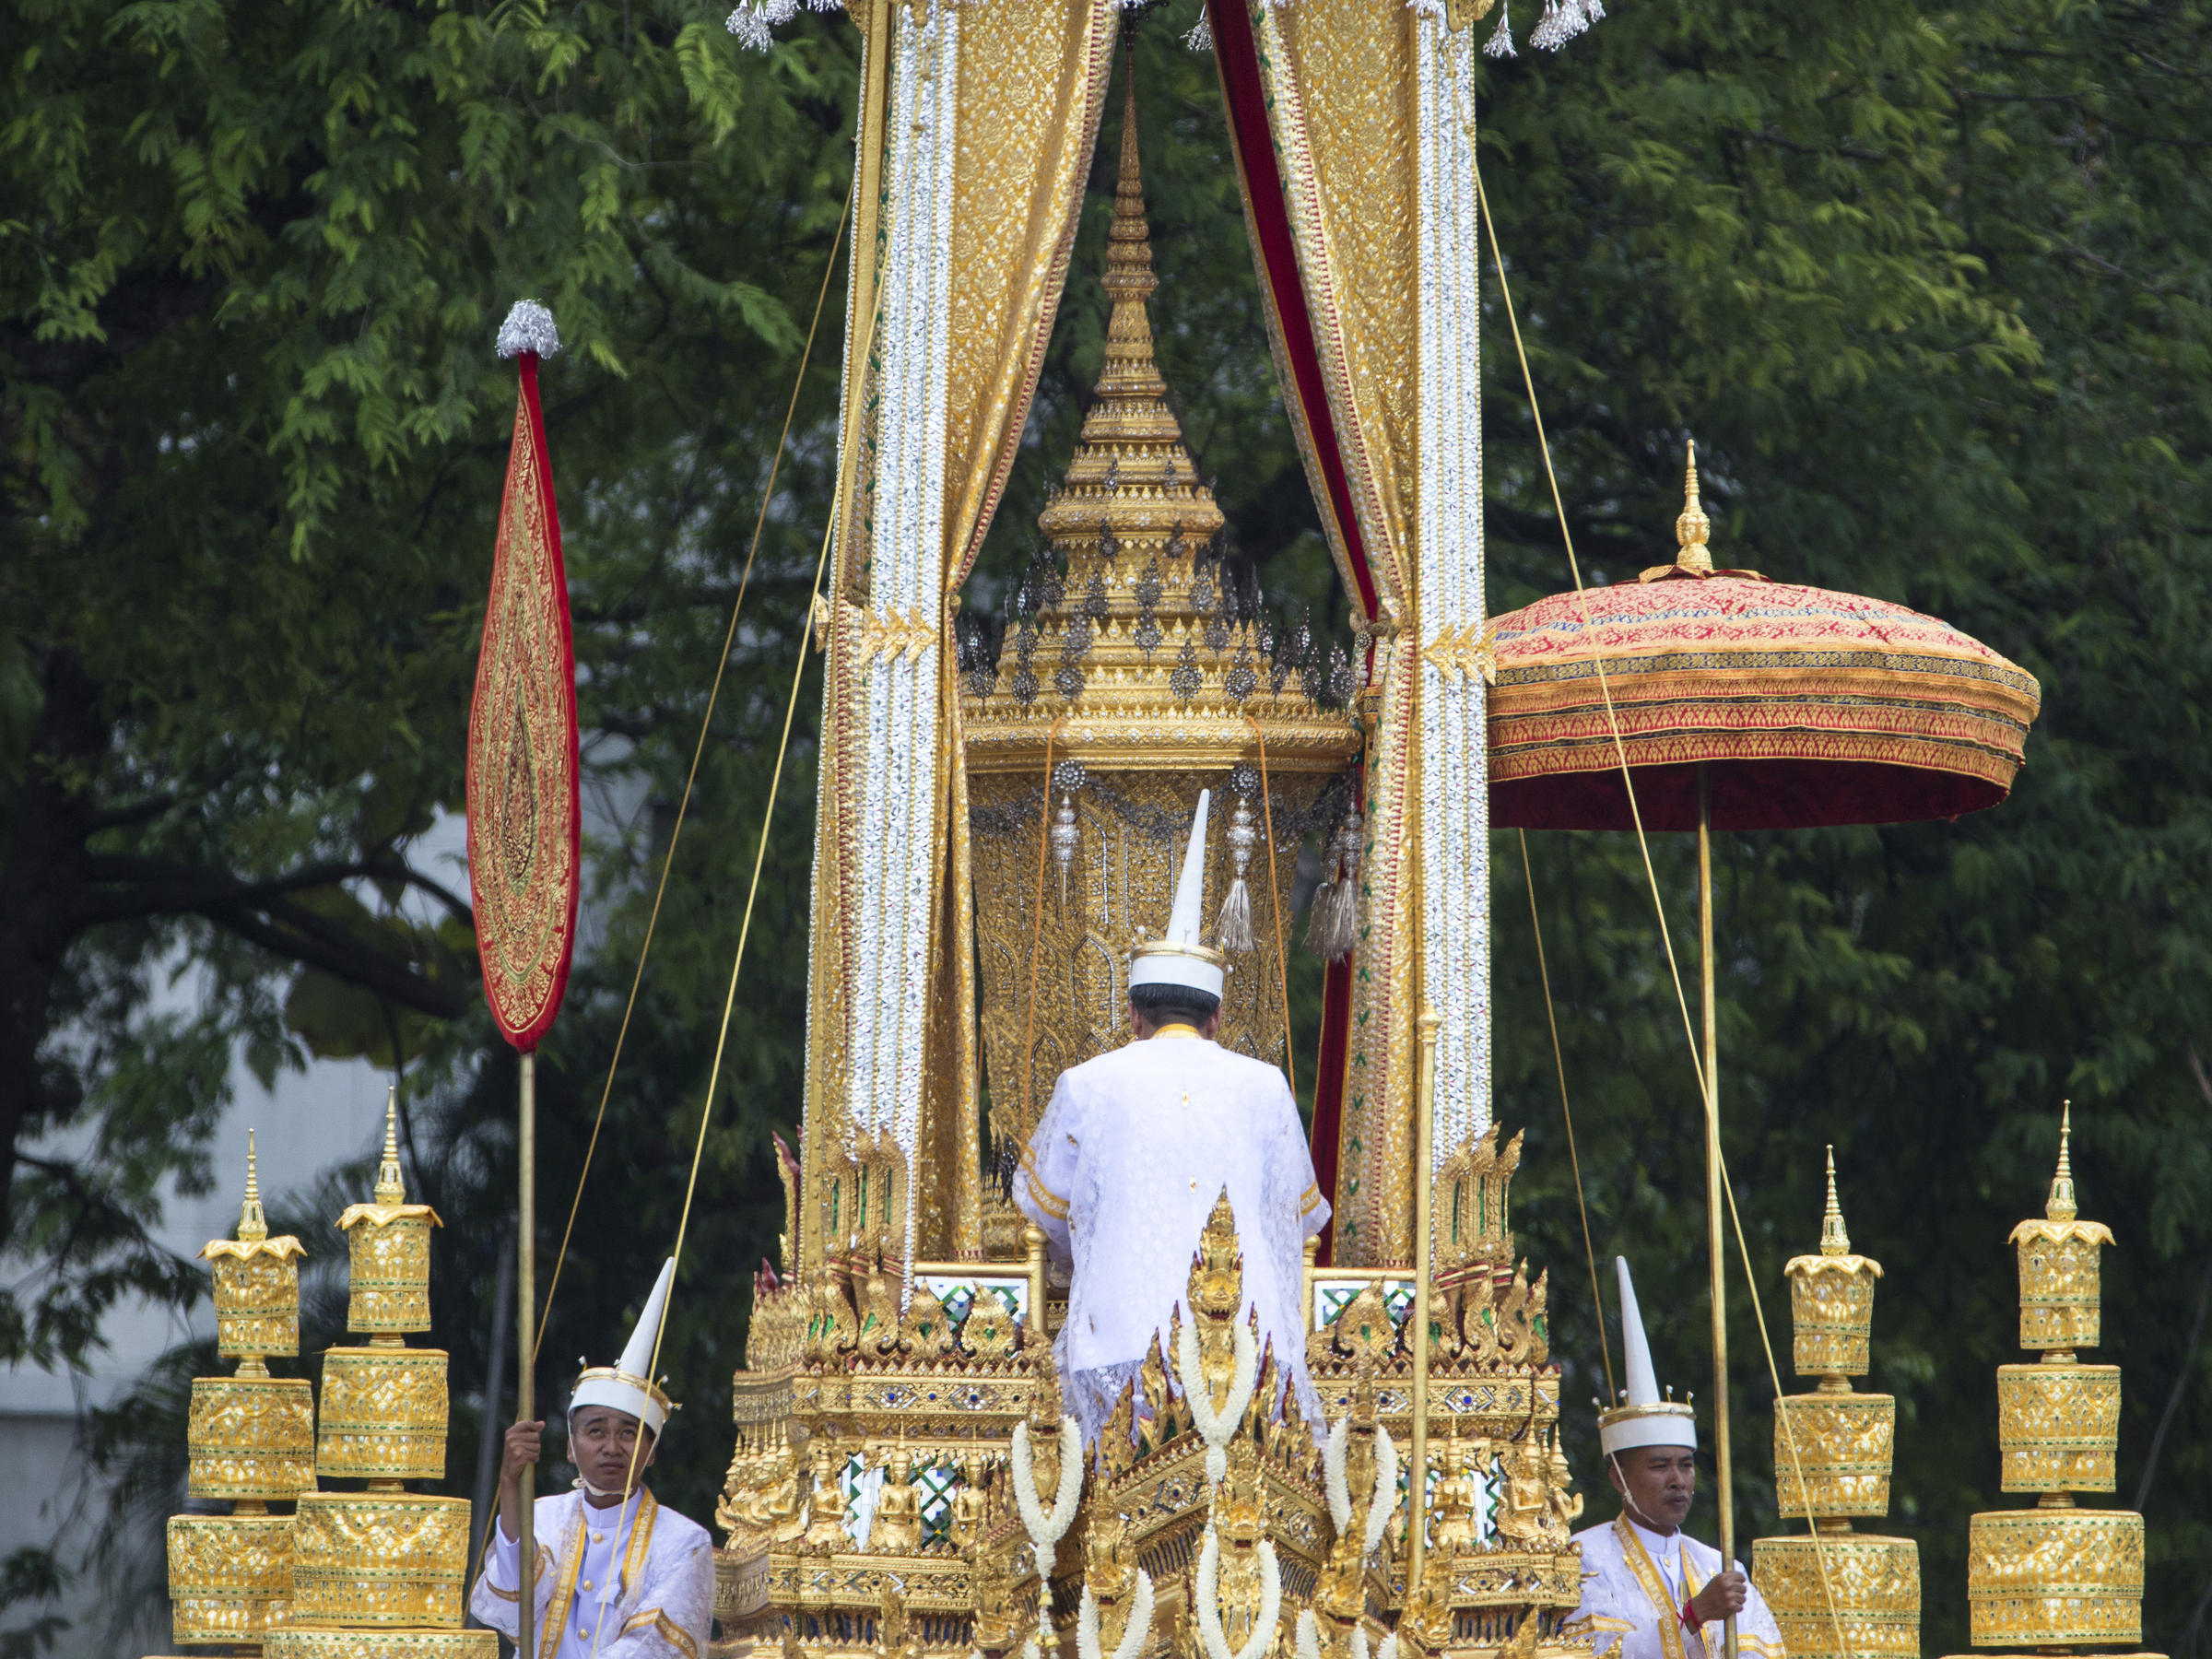 the king of thailand The late king of thailand is going to be cremated on 26 october, more than a year after his death plunged the country into mourning bhumibol adulyadej's funerary.